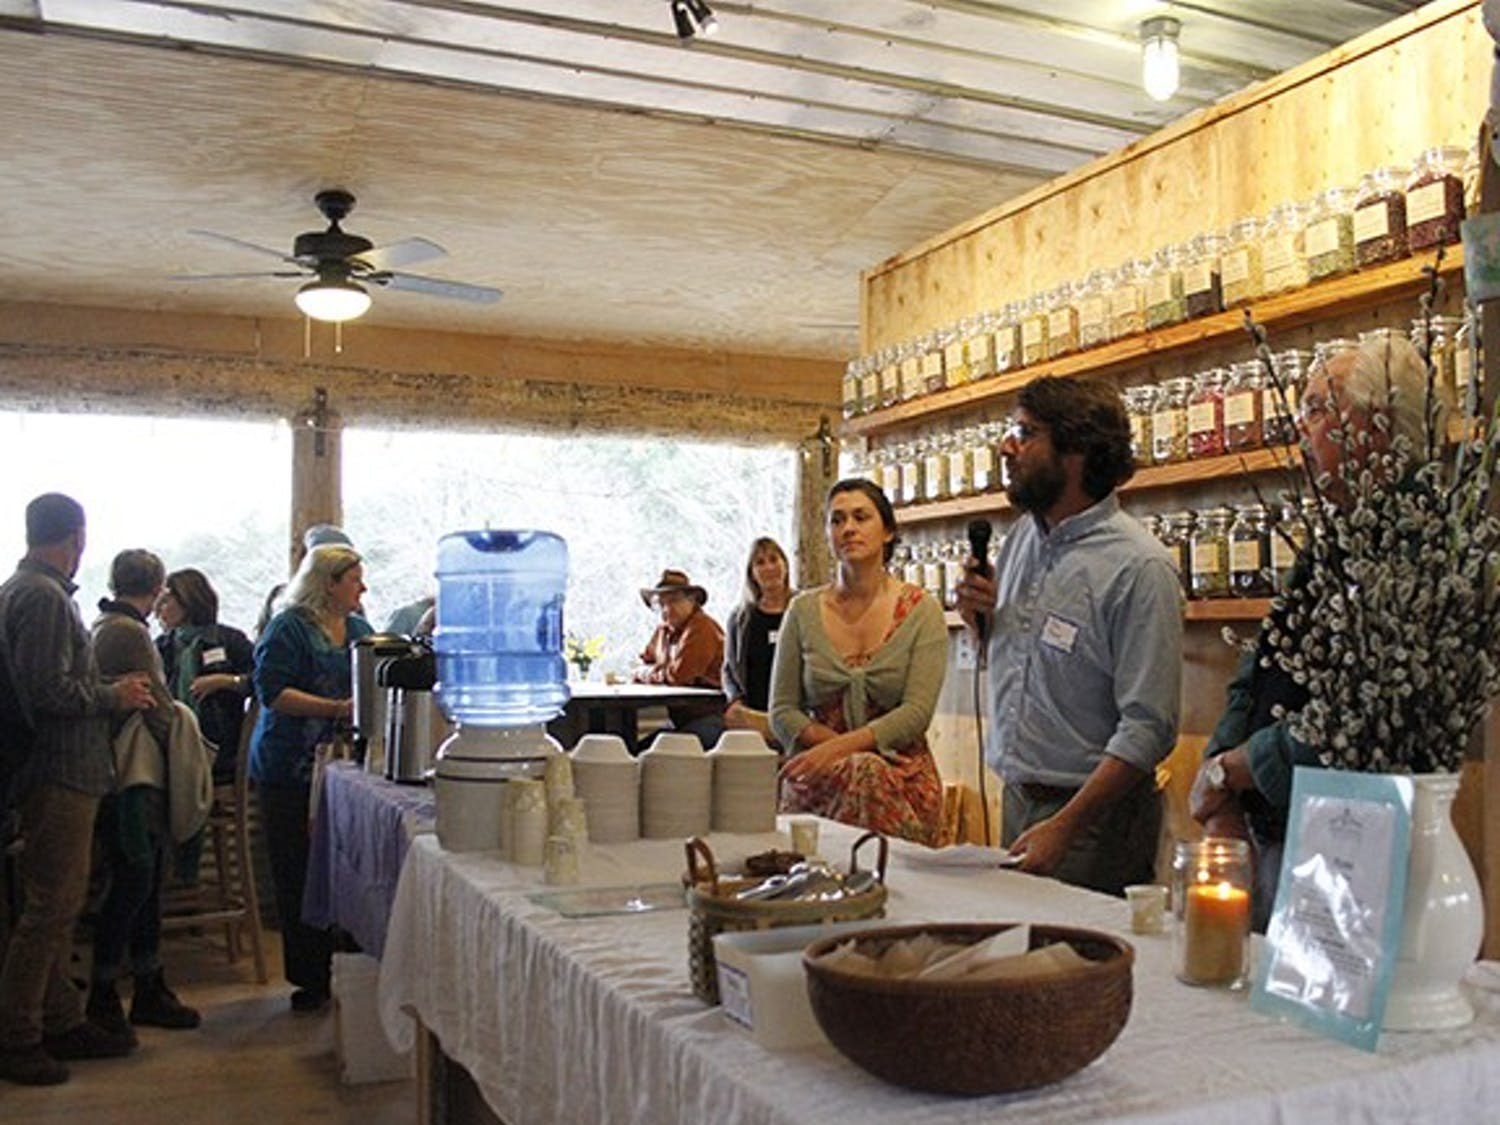 Tim & Megan Toben speak to friends and supporters of their project, The Honeysuckle Tea House outside of Carrboro in Chapel Hill, on Saturday March 22nd 2014. The Tea House is a collaborative project that began with a kickstarter page. It's set to open this March